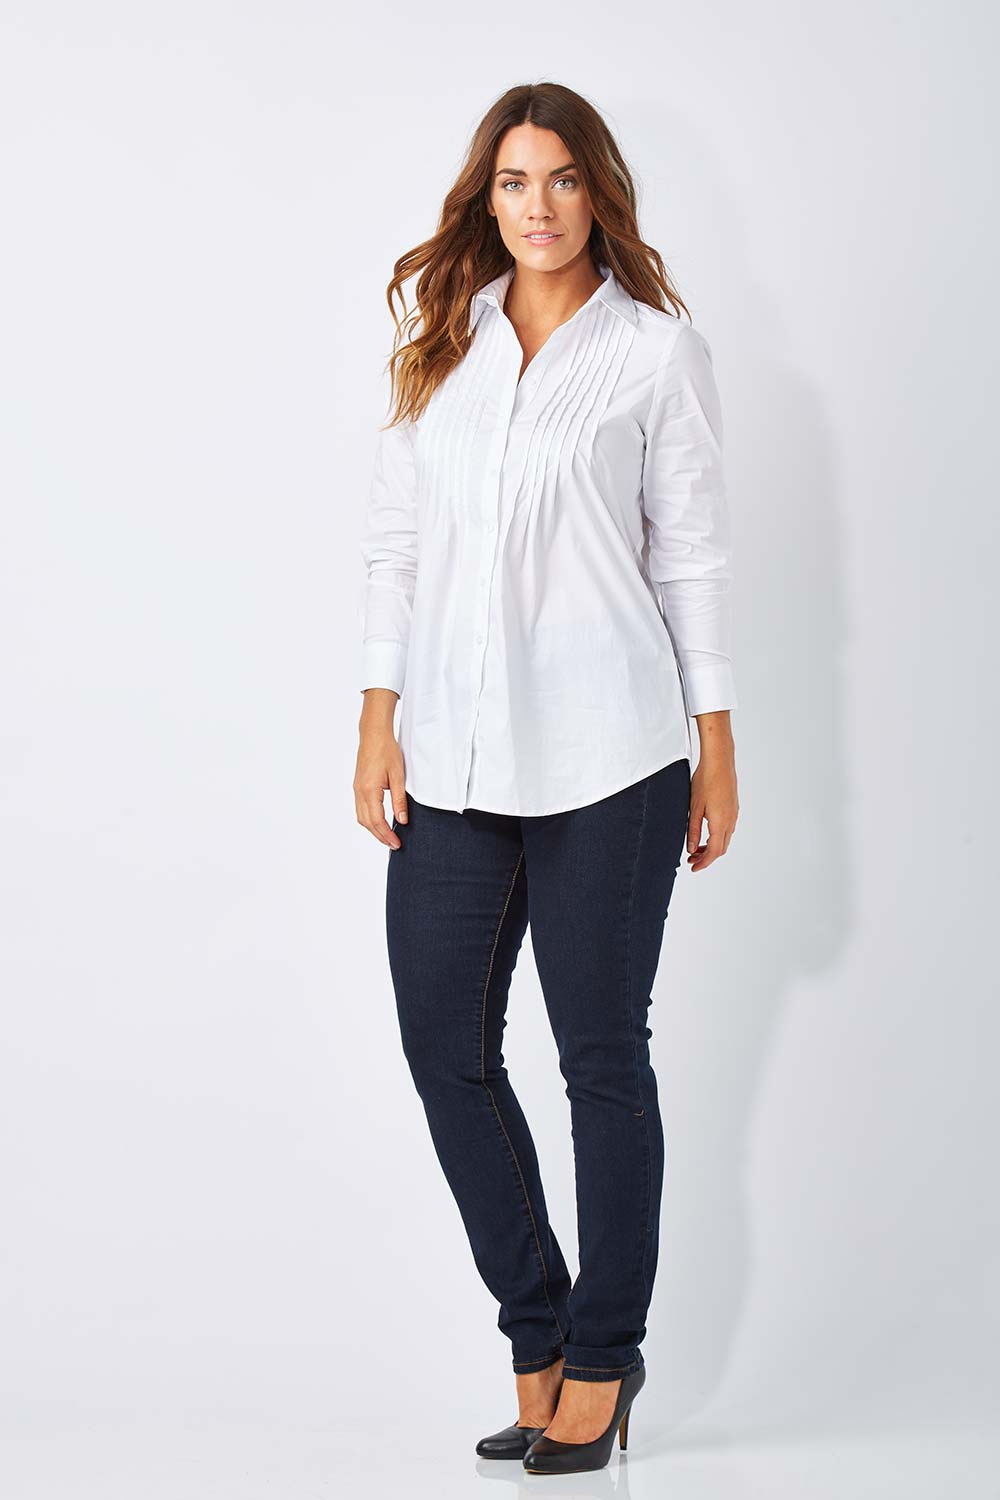 birdsnest women Shop stylish and affordable dresses online at birdsnest shop dresses online by body shape, personality, occasion and more plus, express post and easy returns.